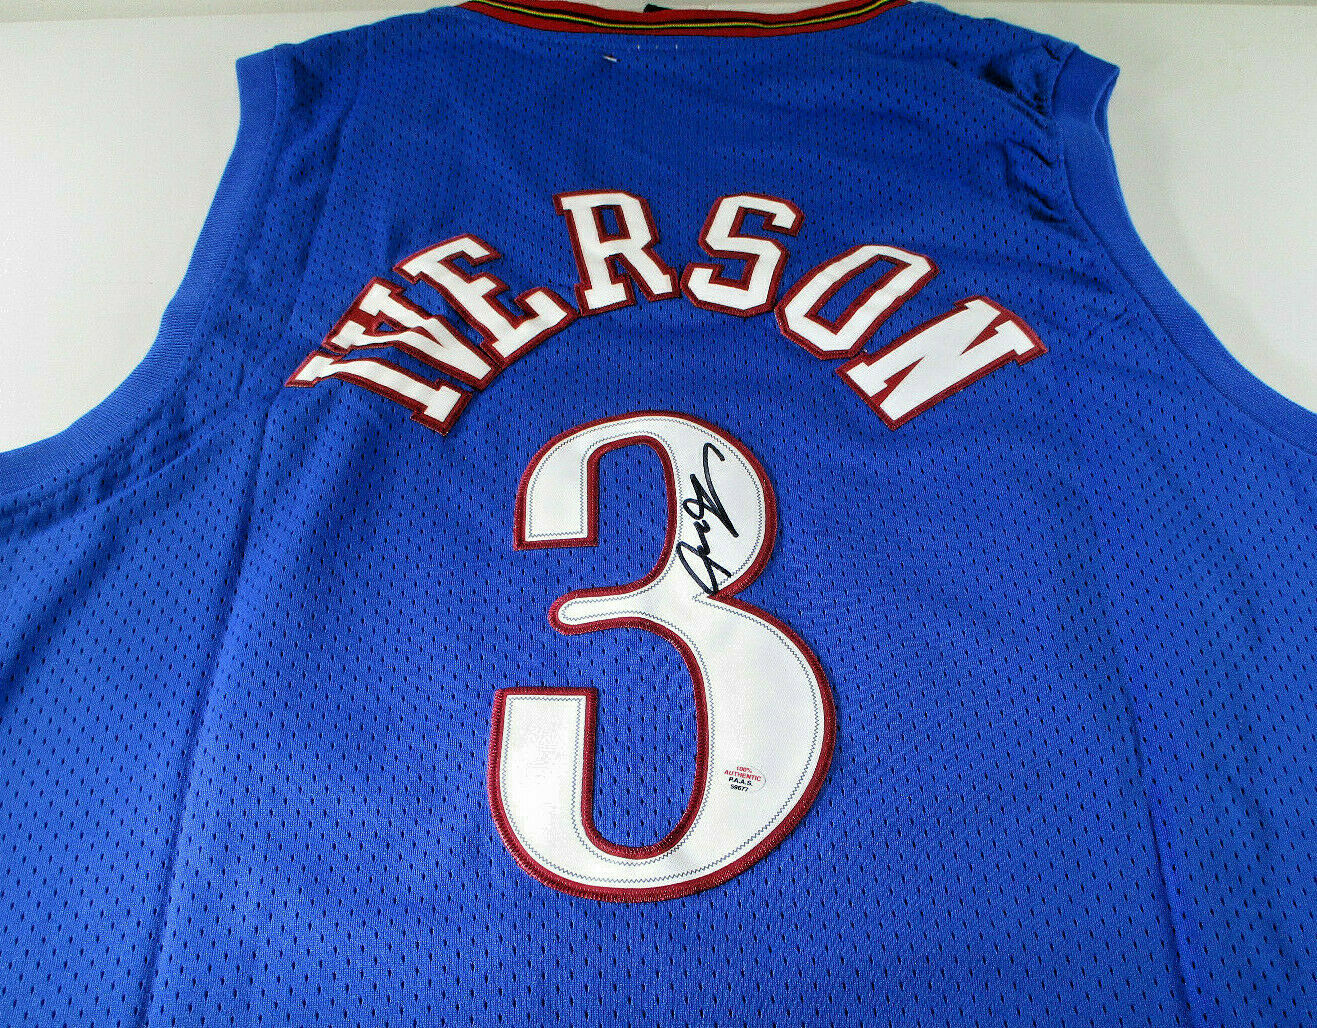 ALLEN IVERSON / NBA HALL OF FAME / AUTOGRAPHED 76ERS BLUE THROWBACK JERSEY / COA